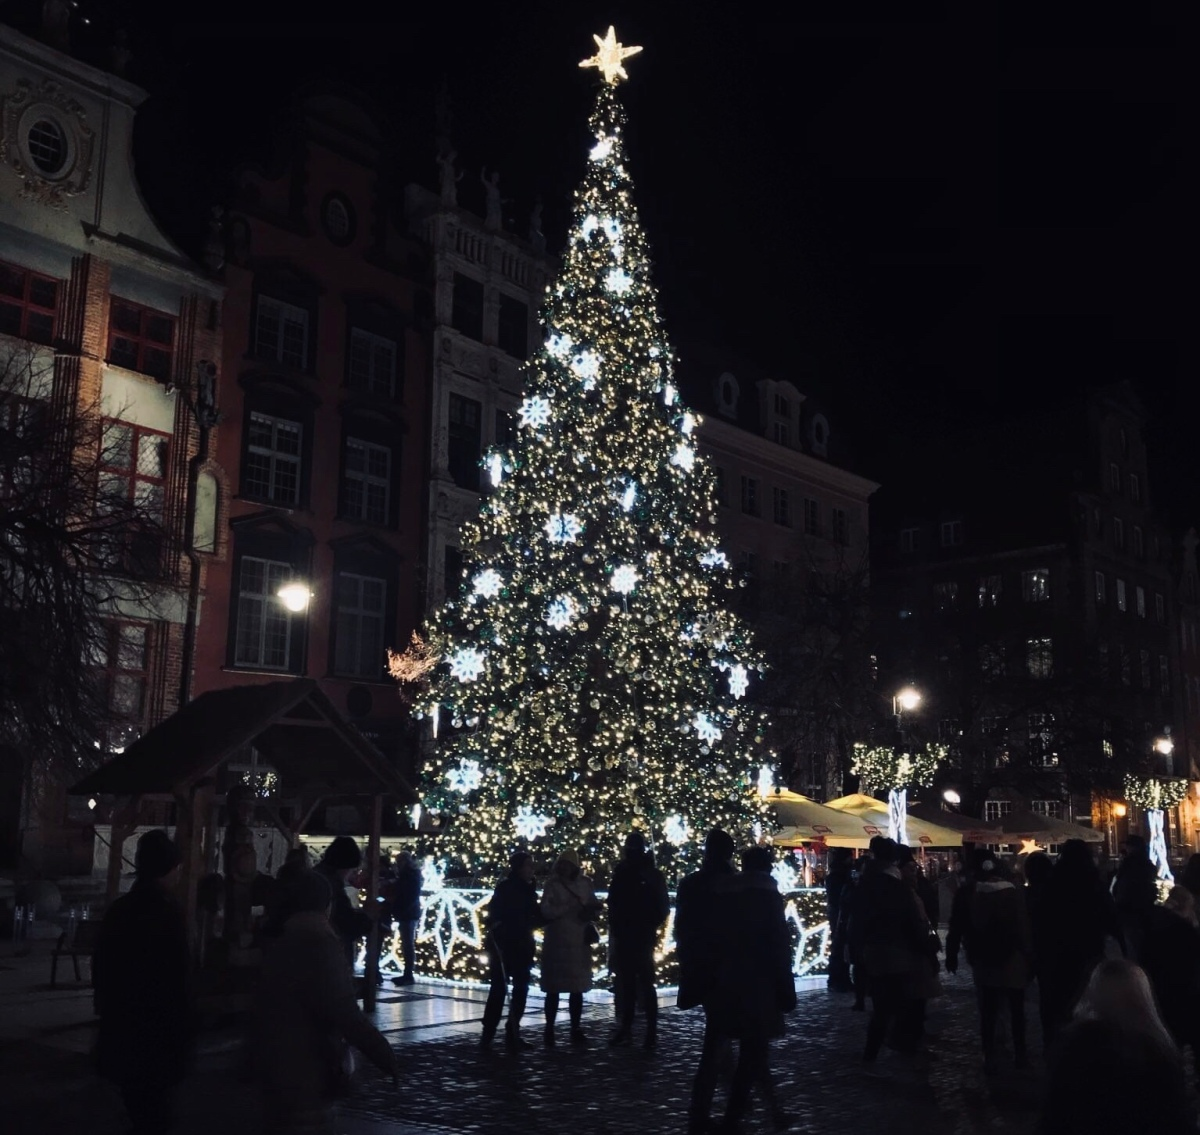 Blogmas 8: New Year in Poland.